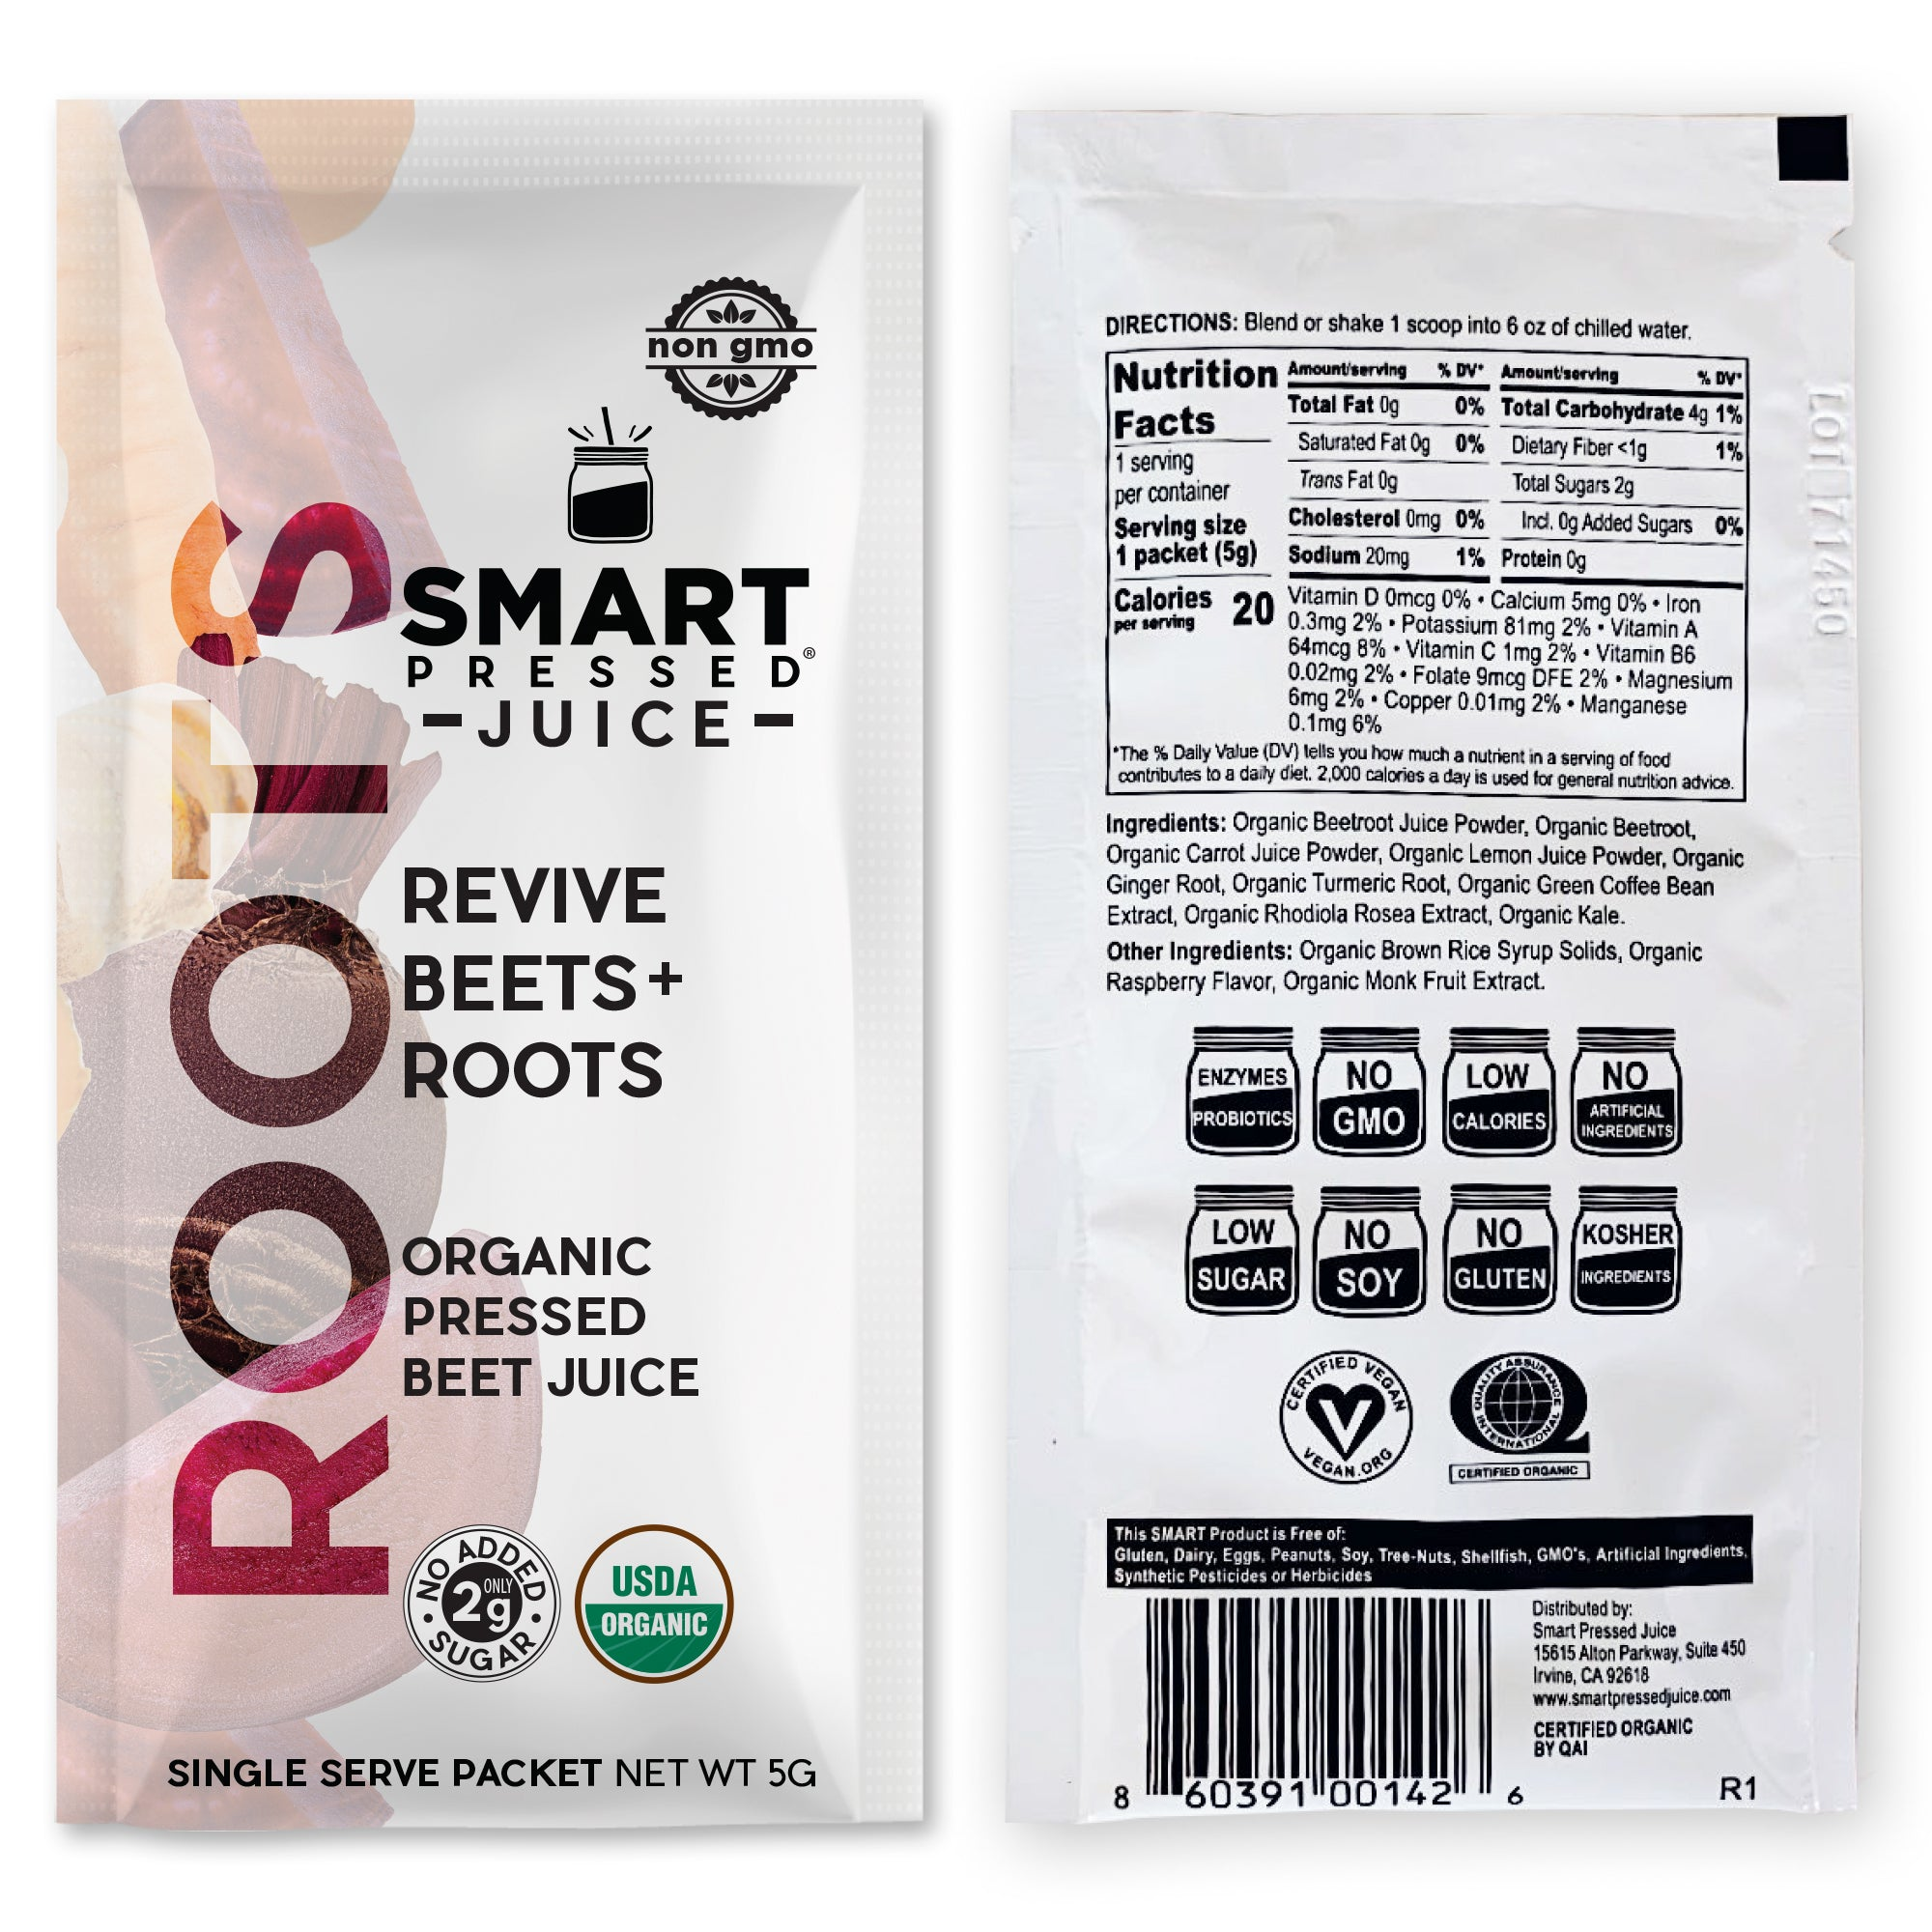 Smart Pressed Juice Revive Beets + Roots Packets